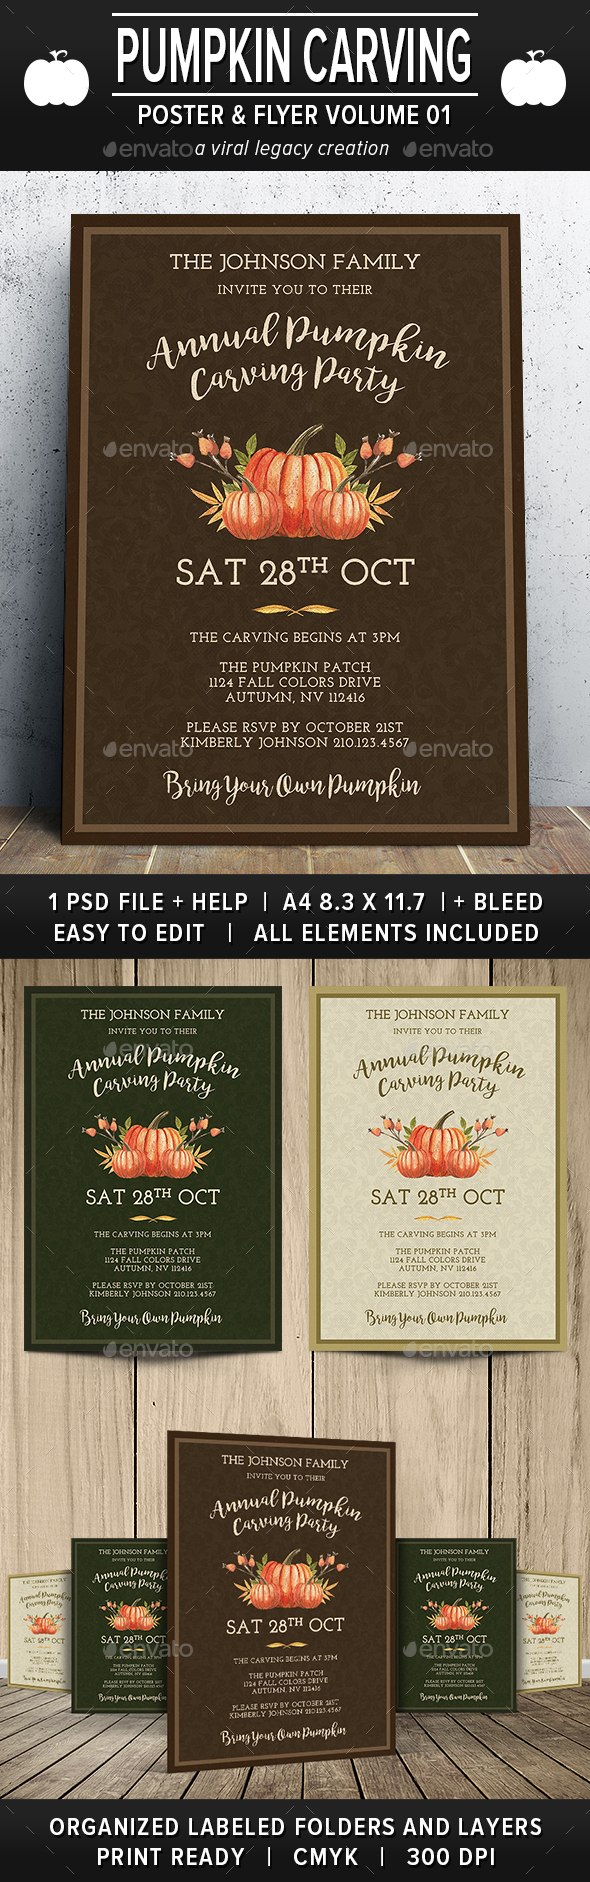 Pumpkin Carving Party Poster / Flyer V01 - Flyers Print Templates